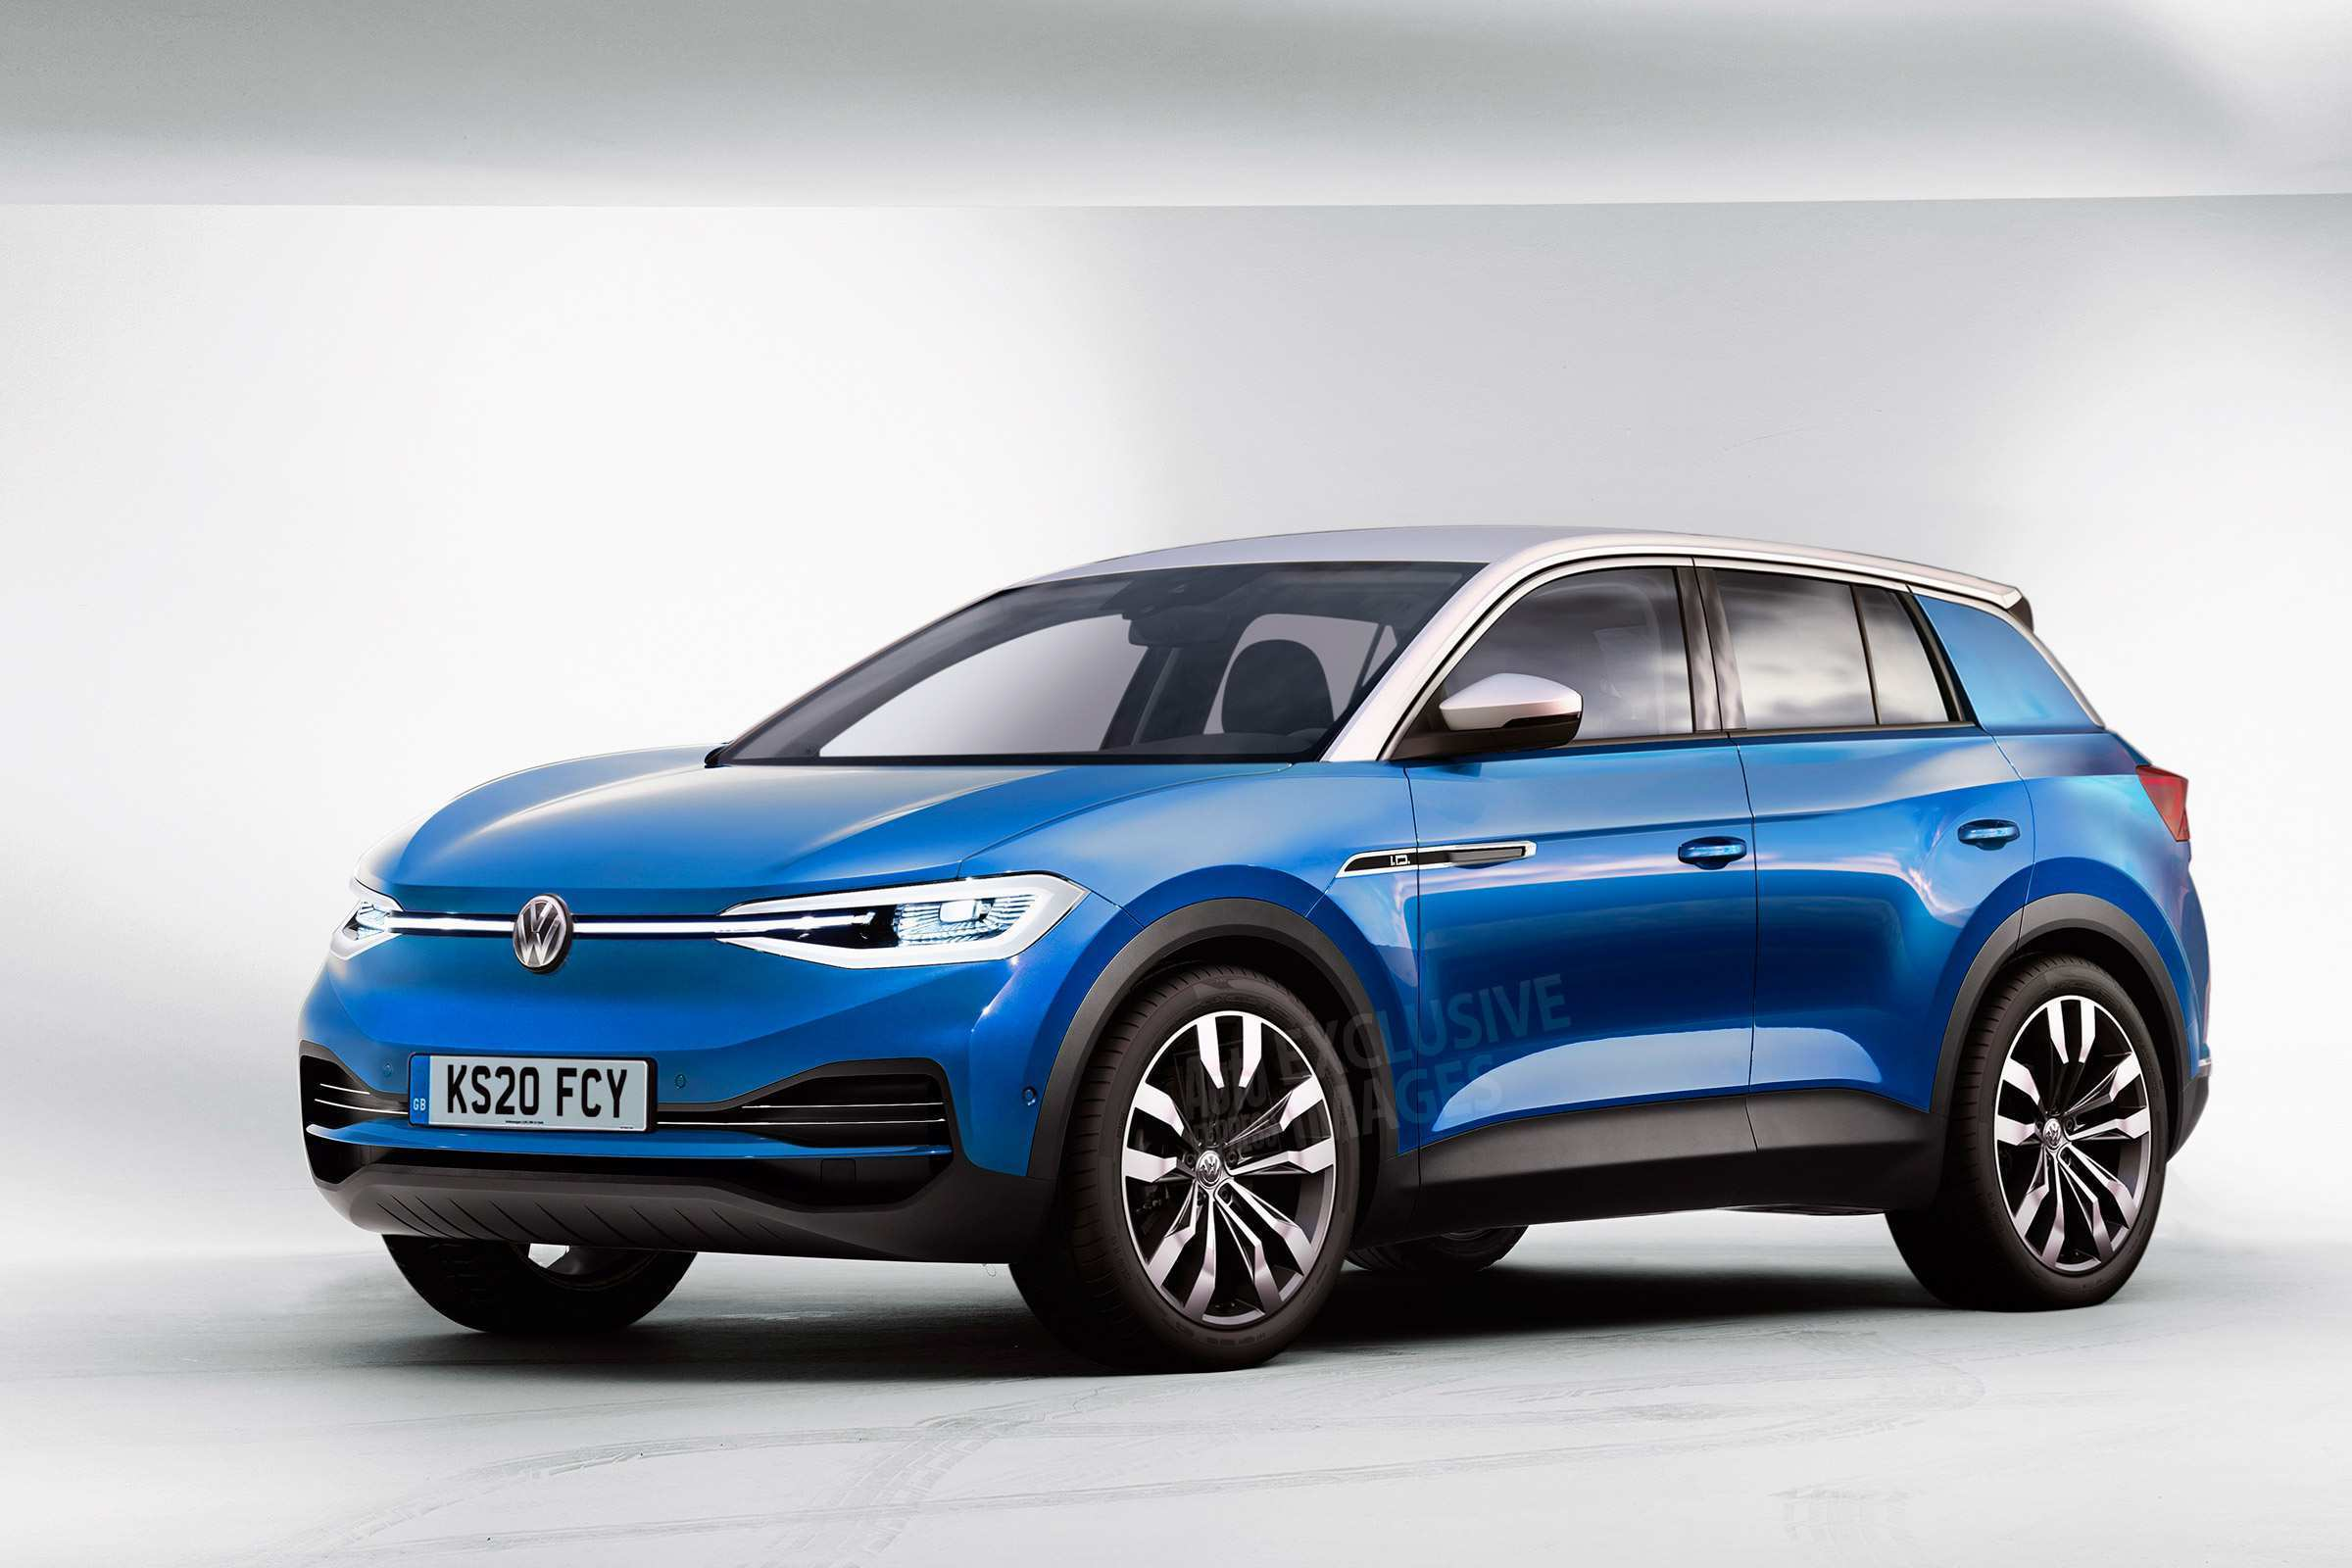 16 Concept of Vw 2020 Car Performance for Vw 2020 Car